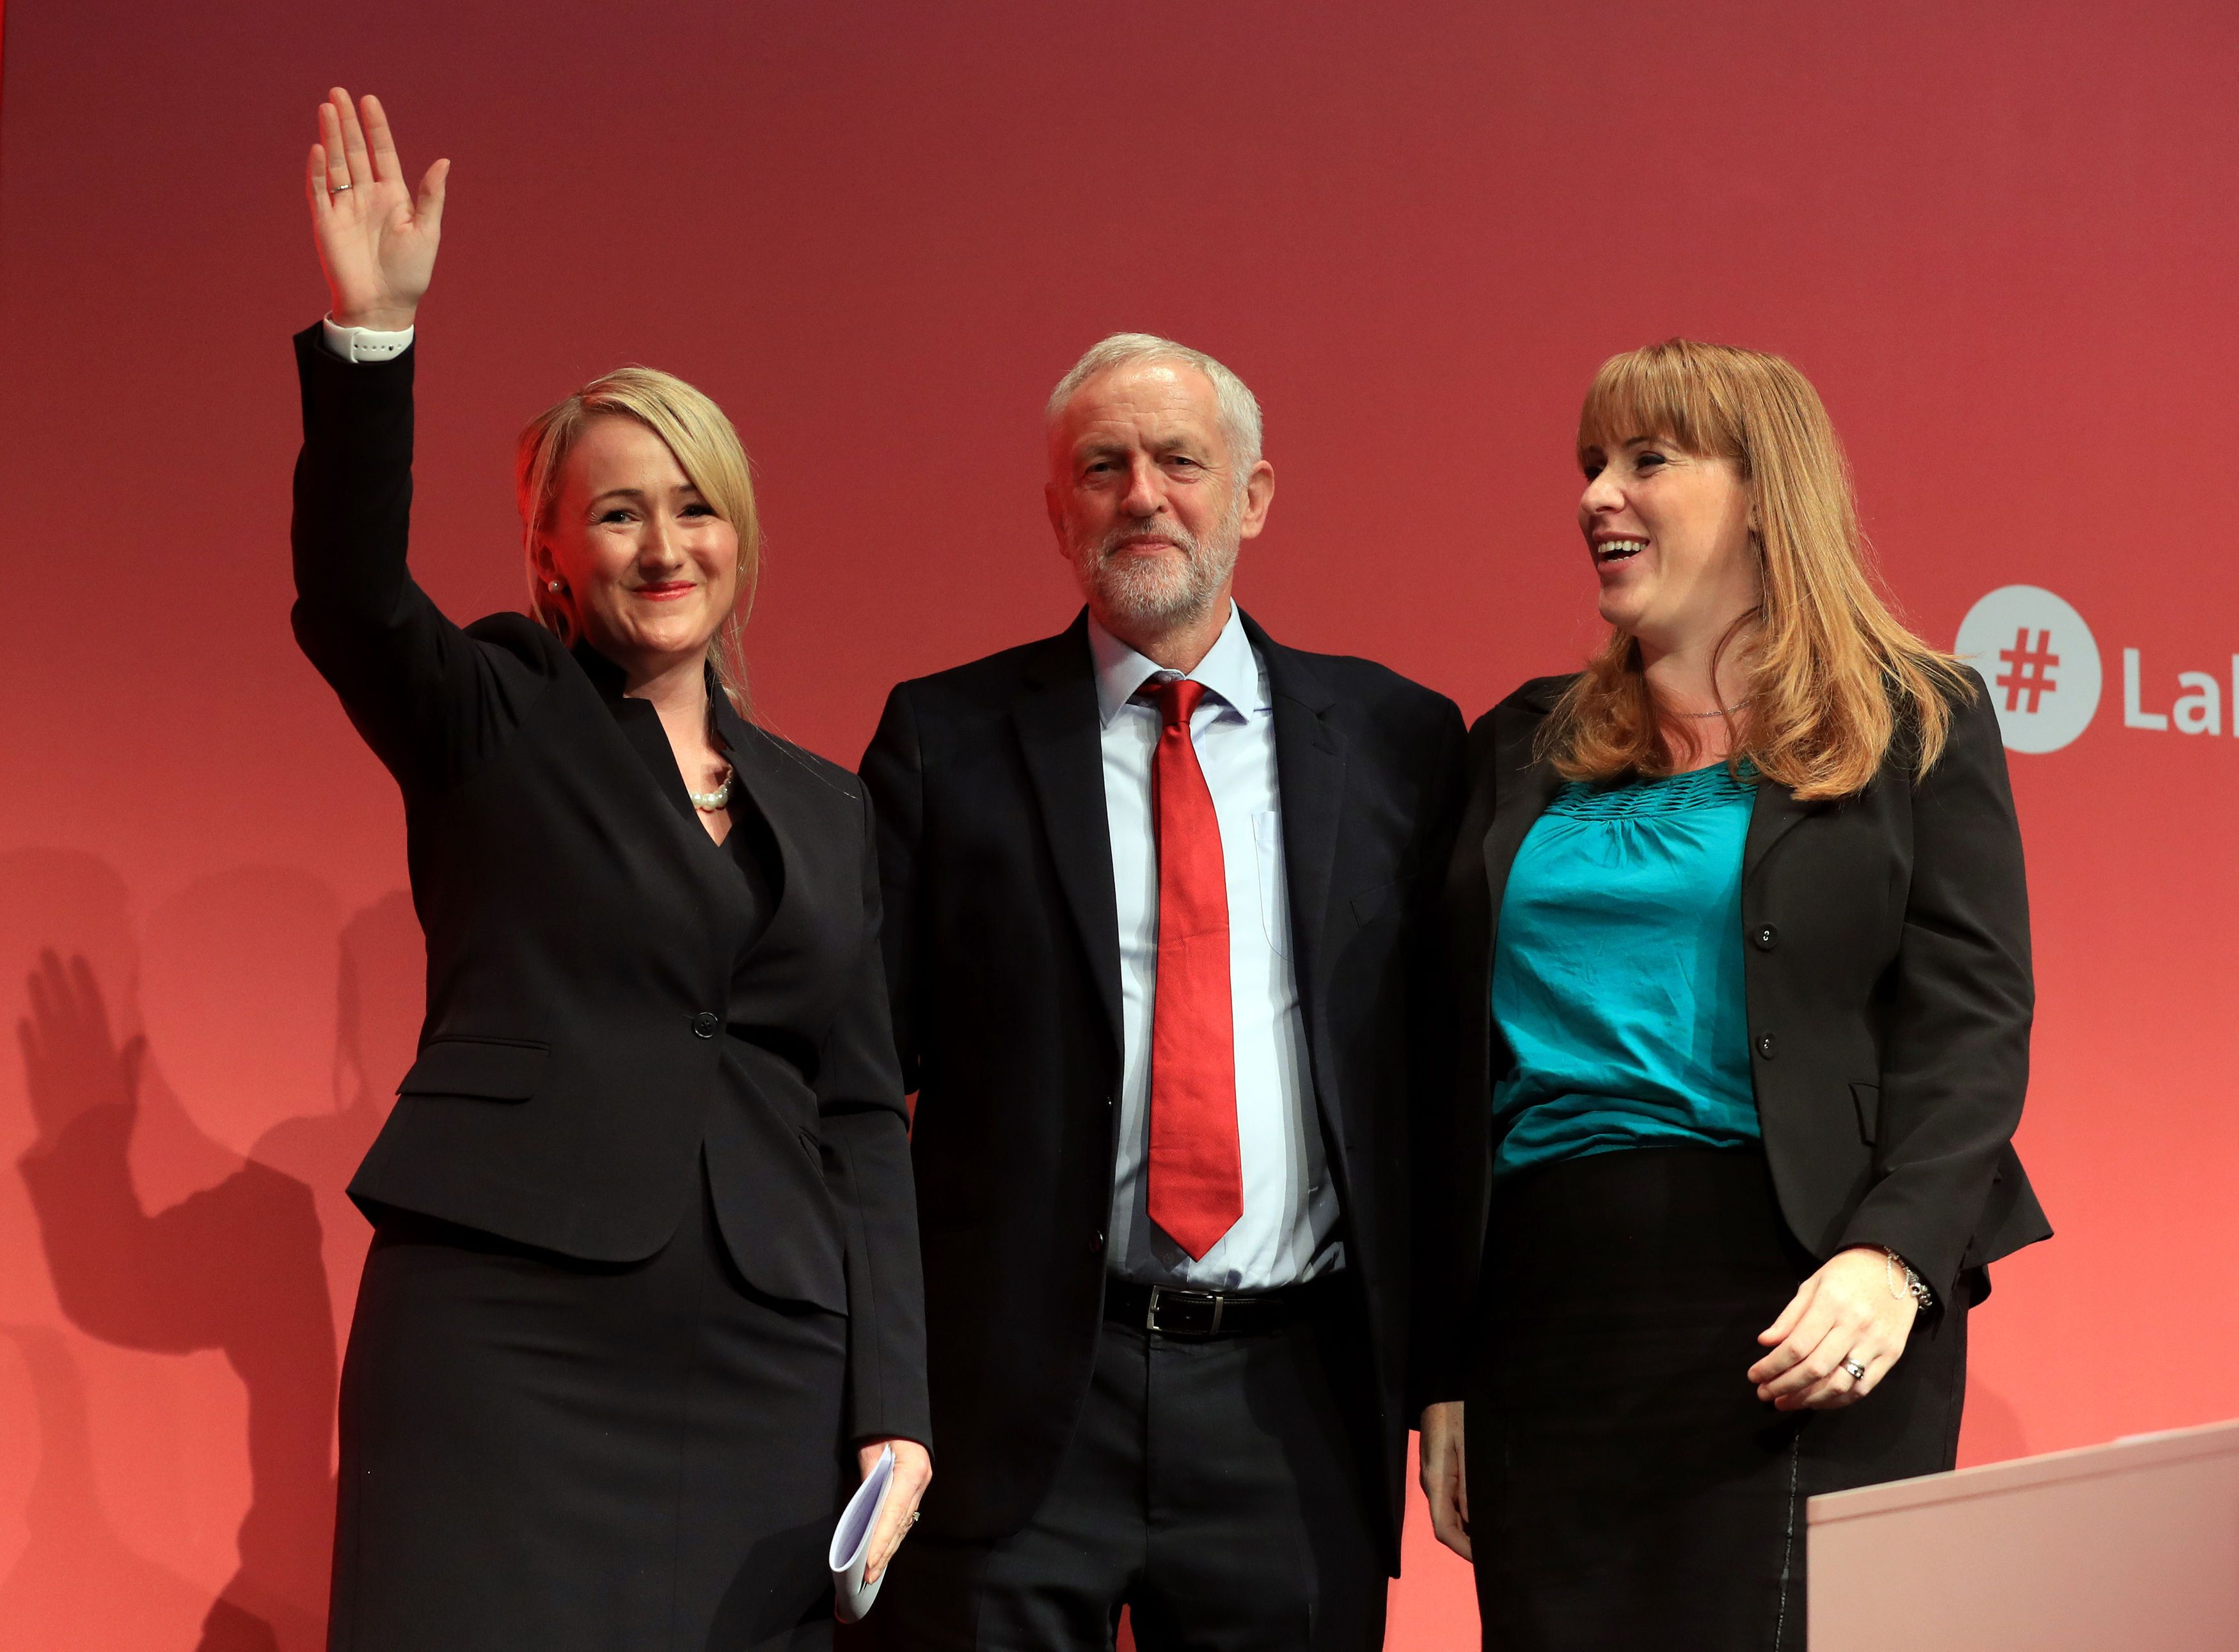 Canterbury MP Rosie Duffield says anti-Semitic Labour party members should visit Auschwitz